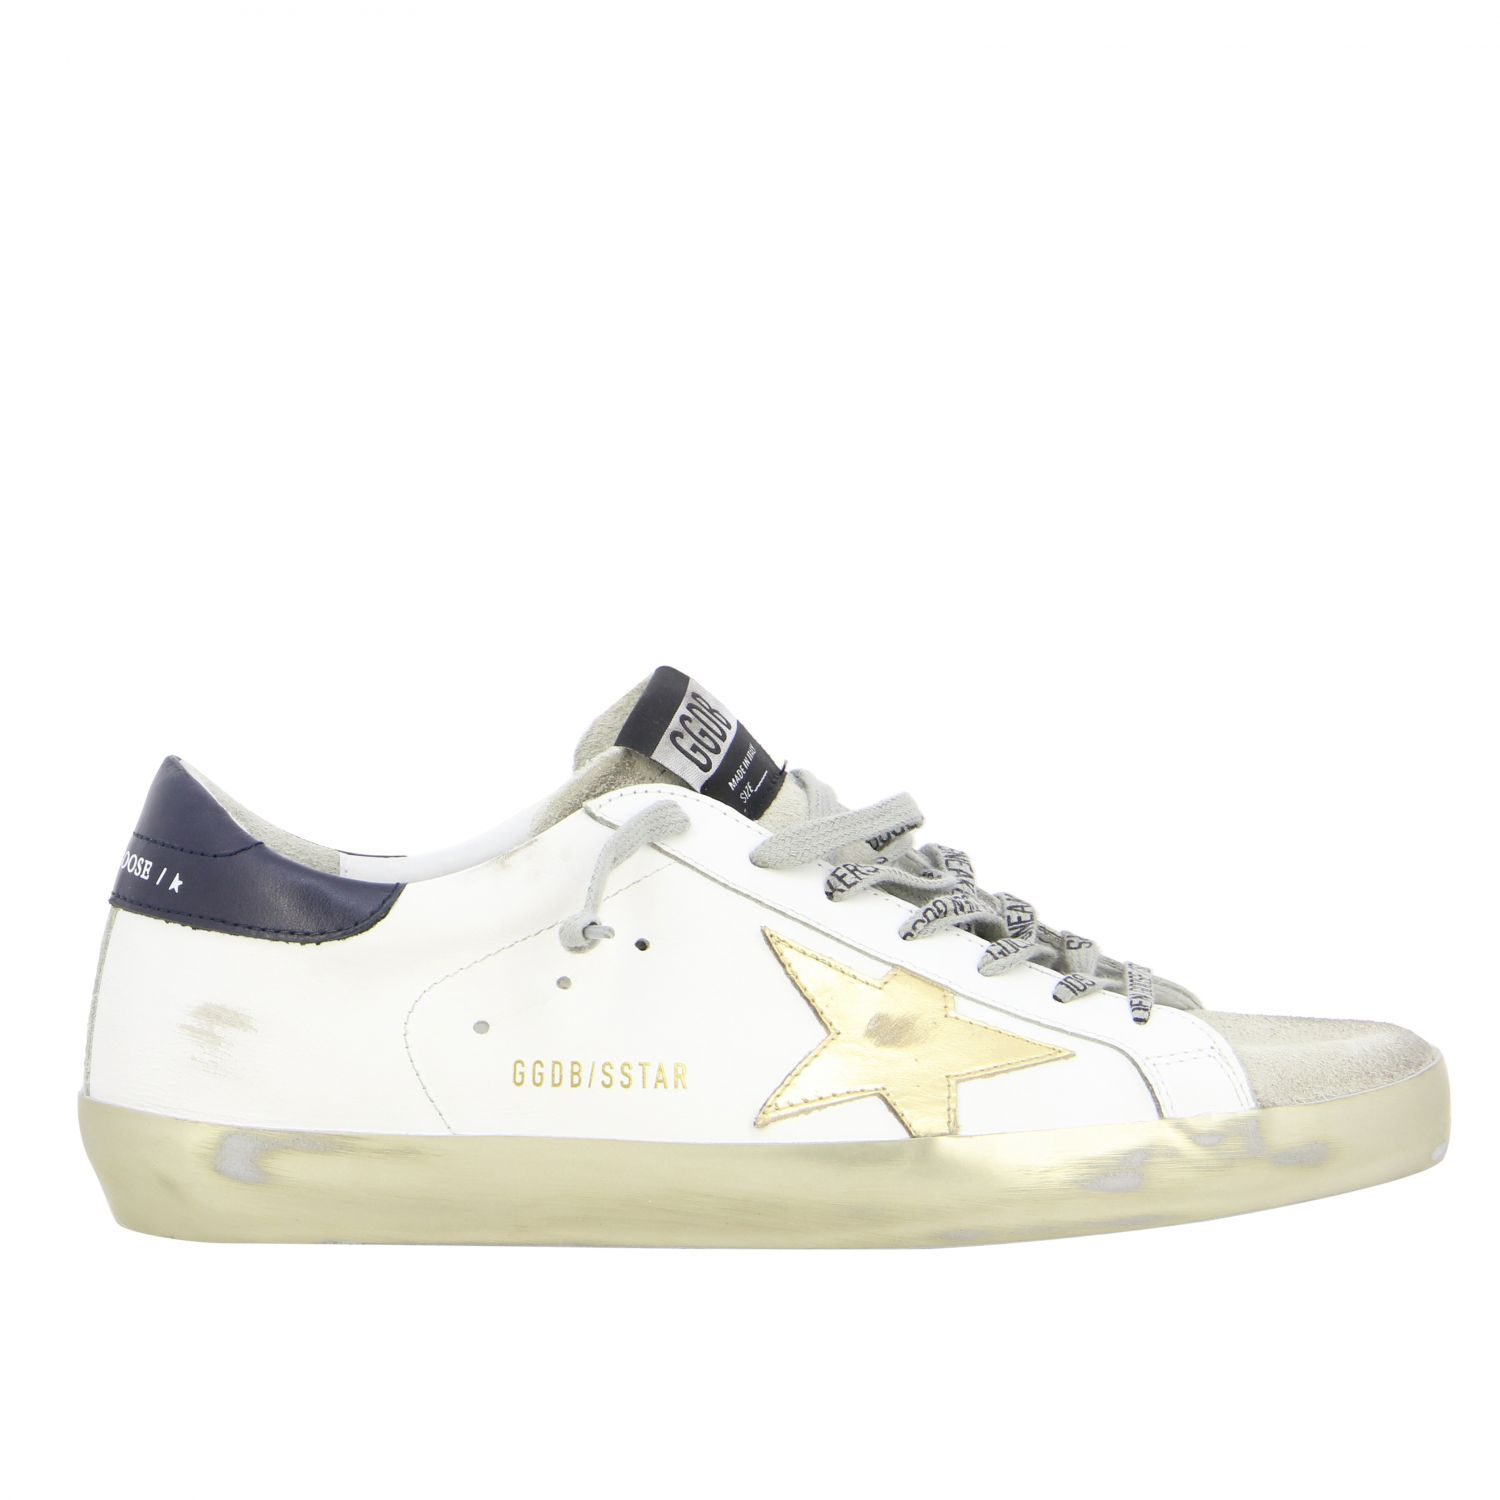 Sneakers Superstar Golden Goose in pelle con stella laminata bianco 1